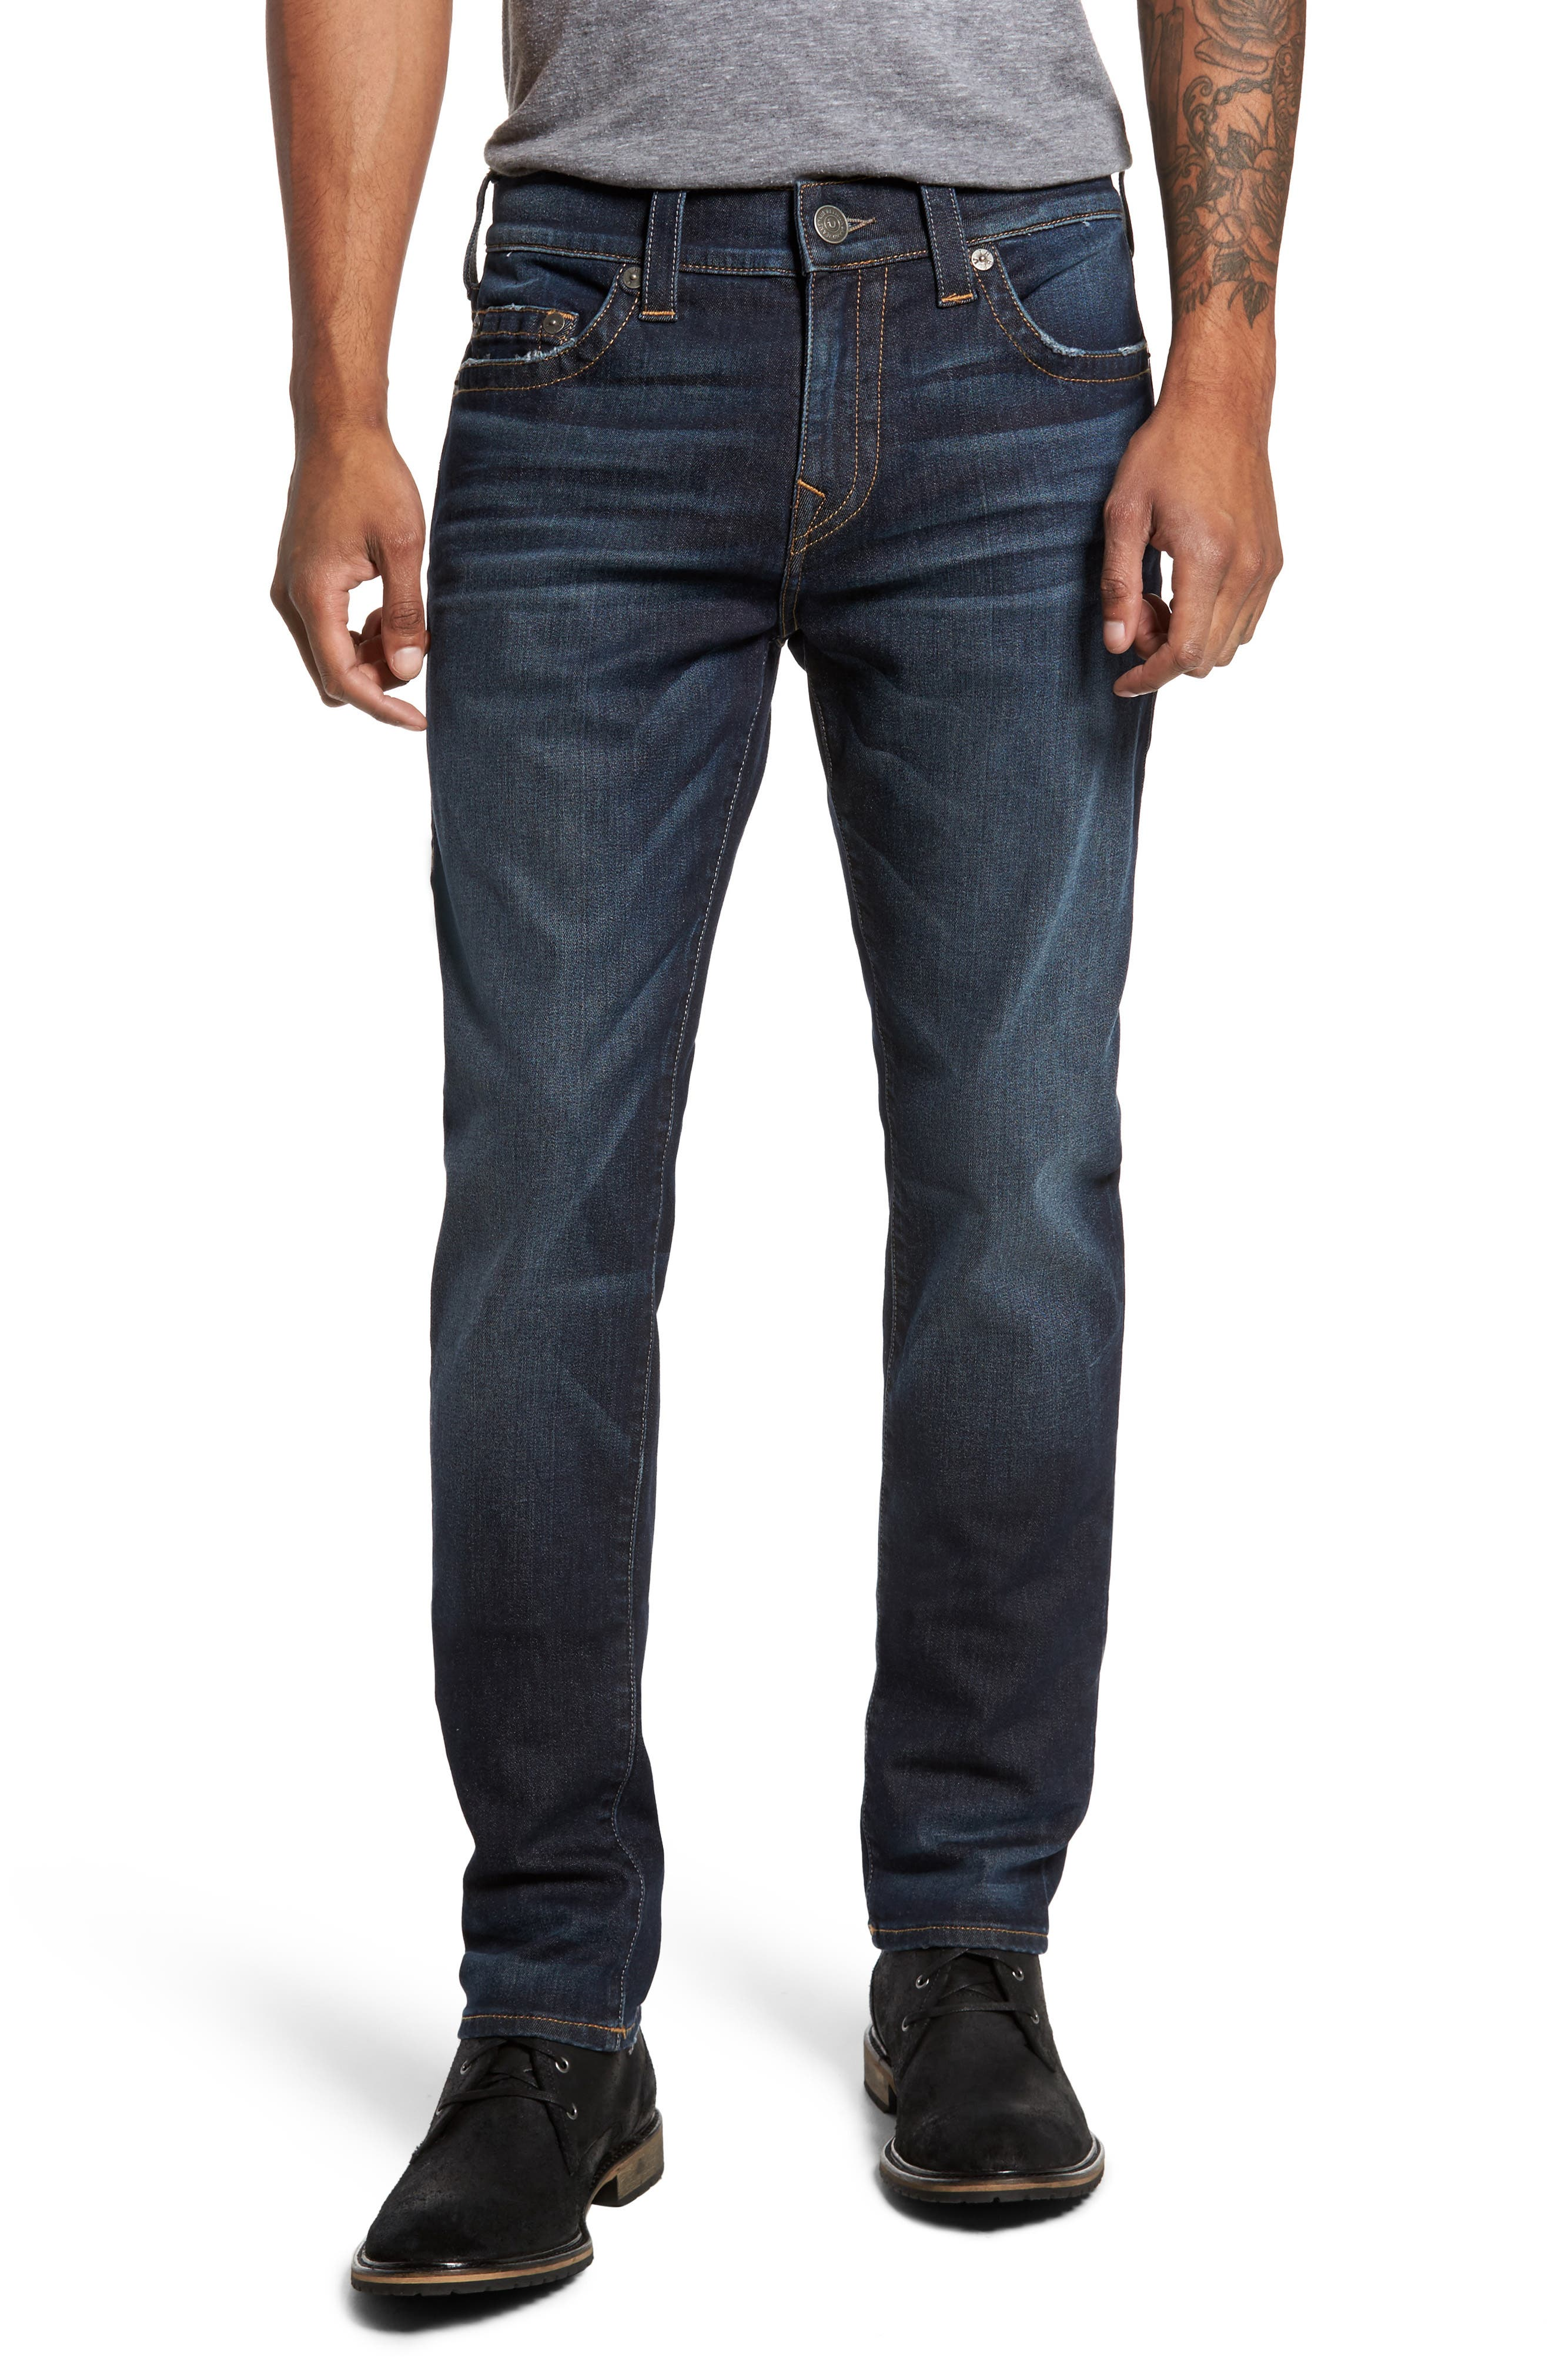 Rocco Skinny Fit Jeans,                         Main,                         color, 403